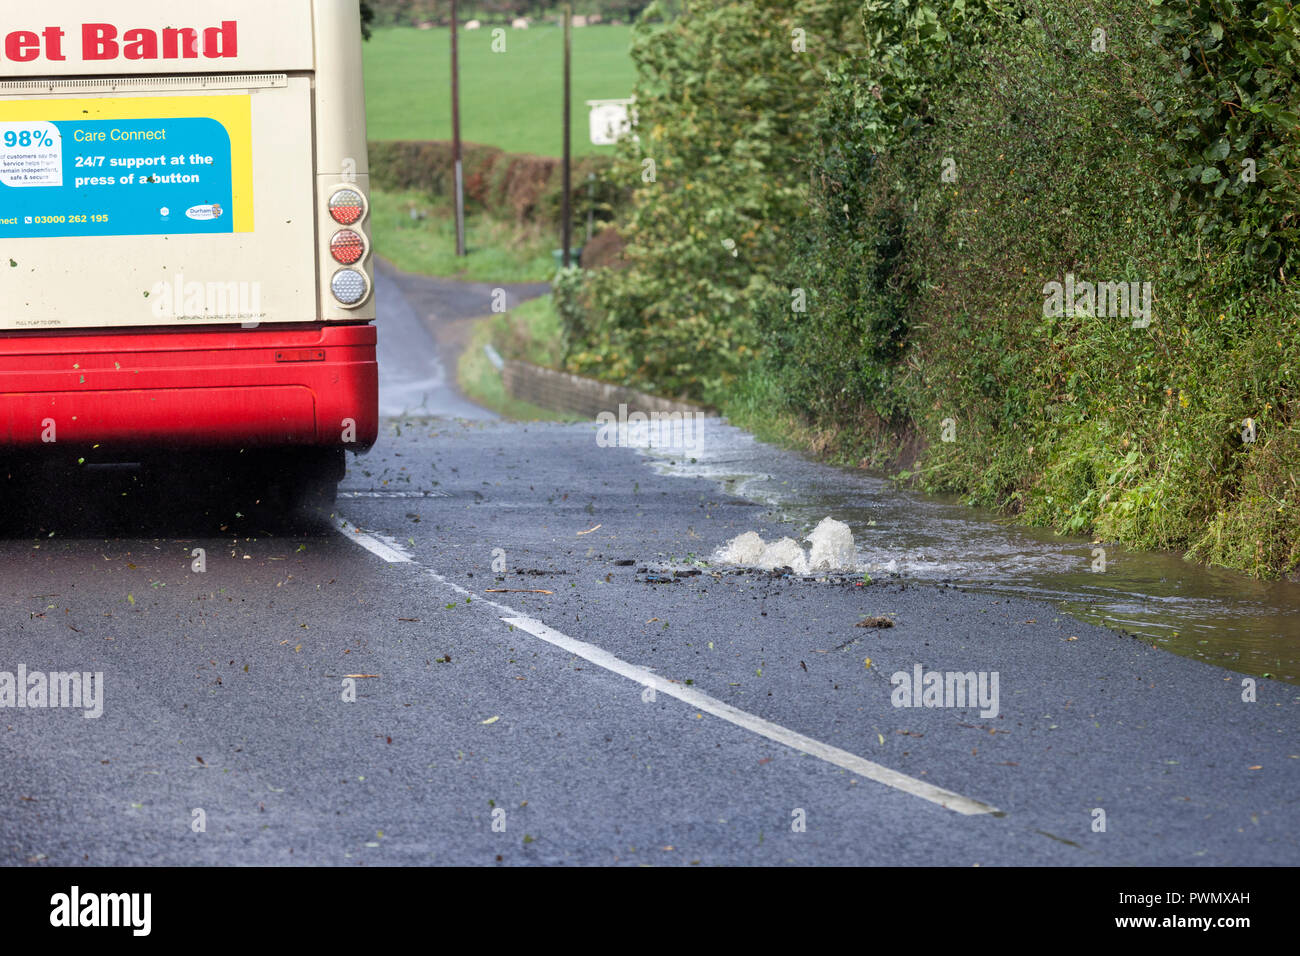 A Bus Driving Past a Burst Water Main in the Road, County Durham, UK - Stock Image